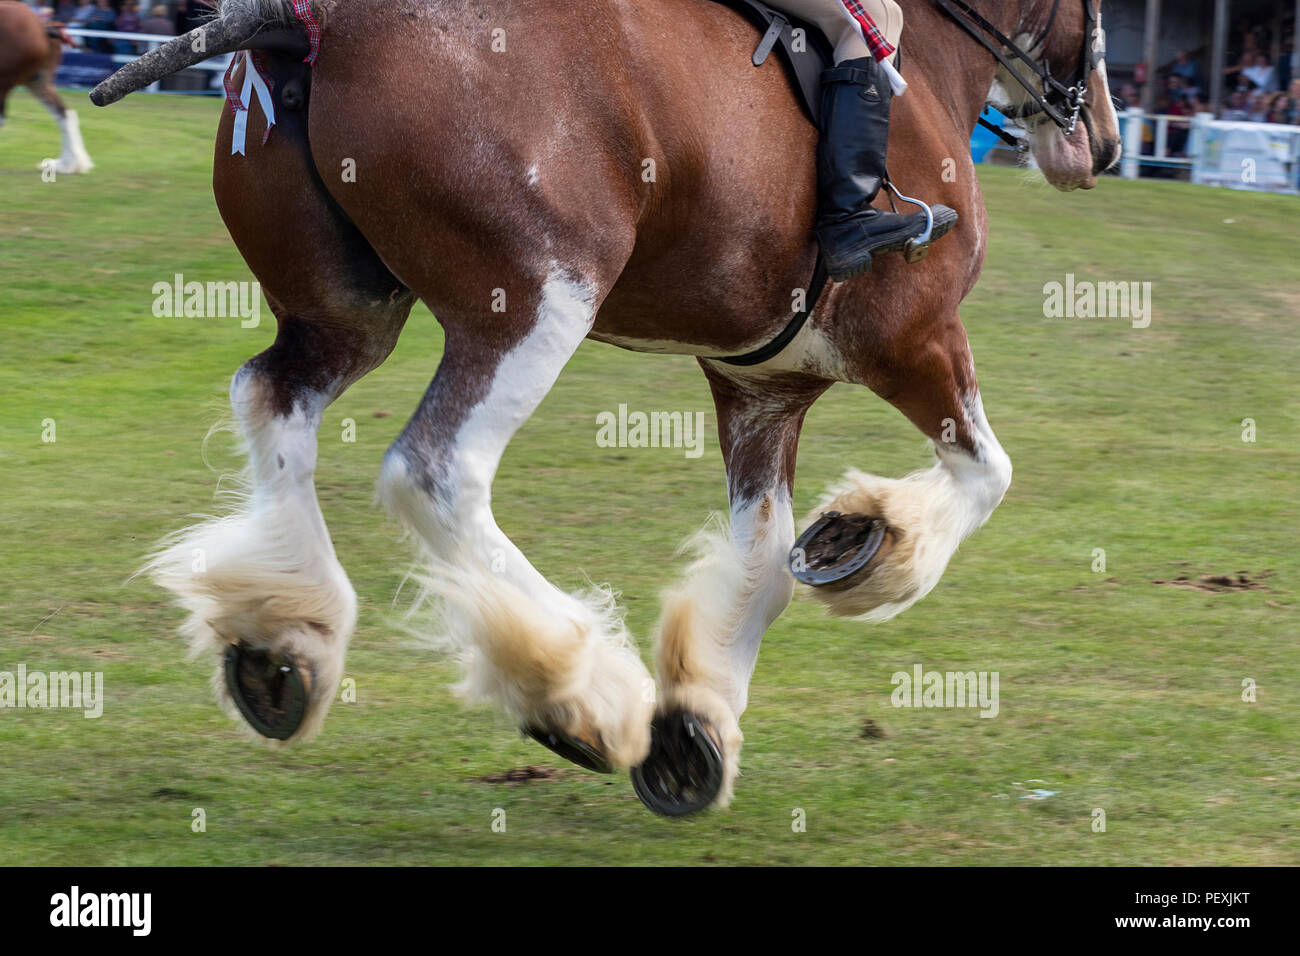 Turriff, Scotland - 06 Aug 2018: Riding Clydesdale Horses at the Turriff Agricultural Show - Stock Image